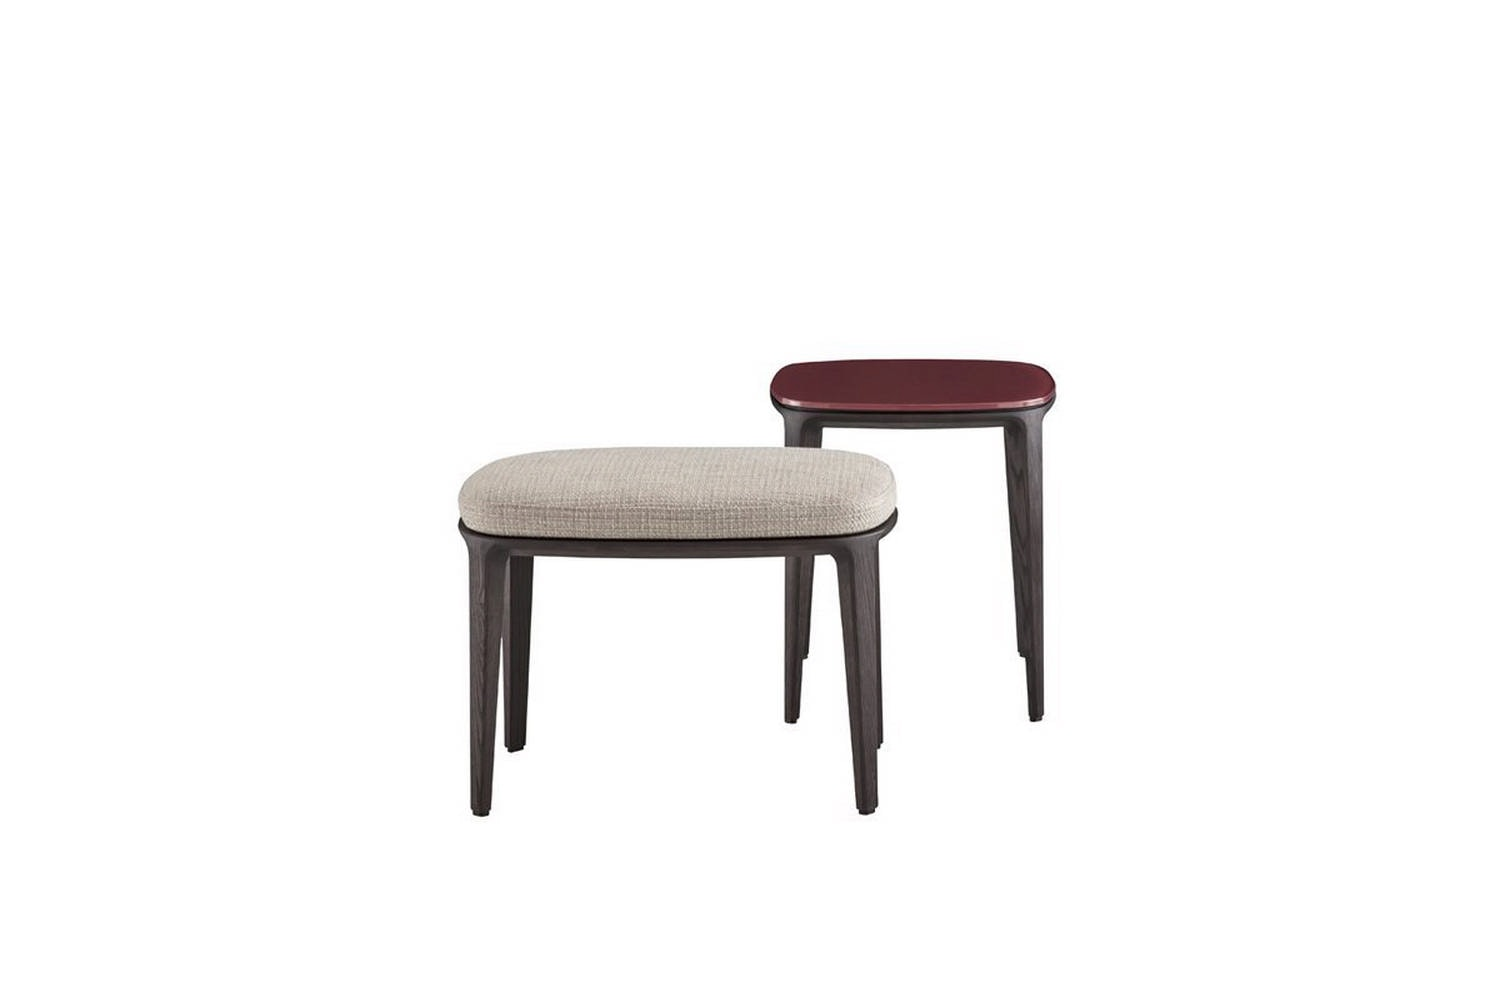 Henry Ottoman by Emmanuel Gallina for Poliform